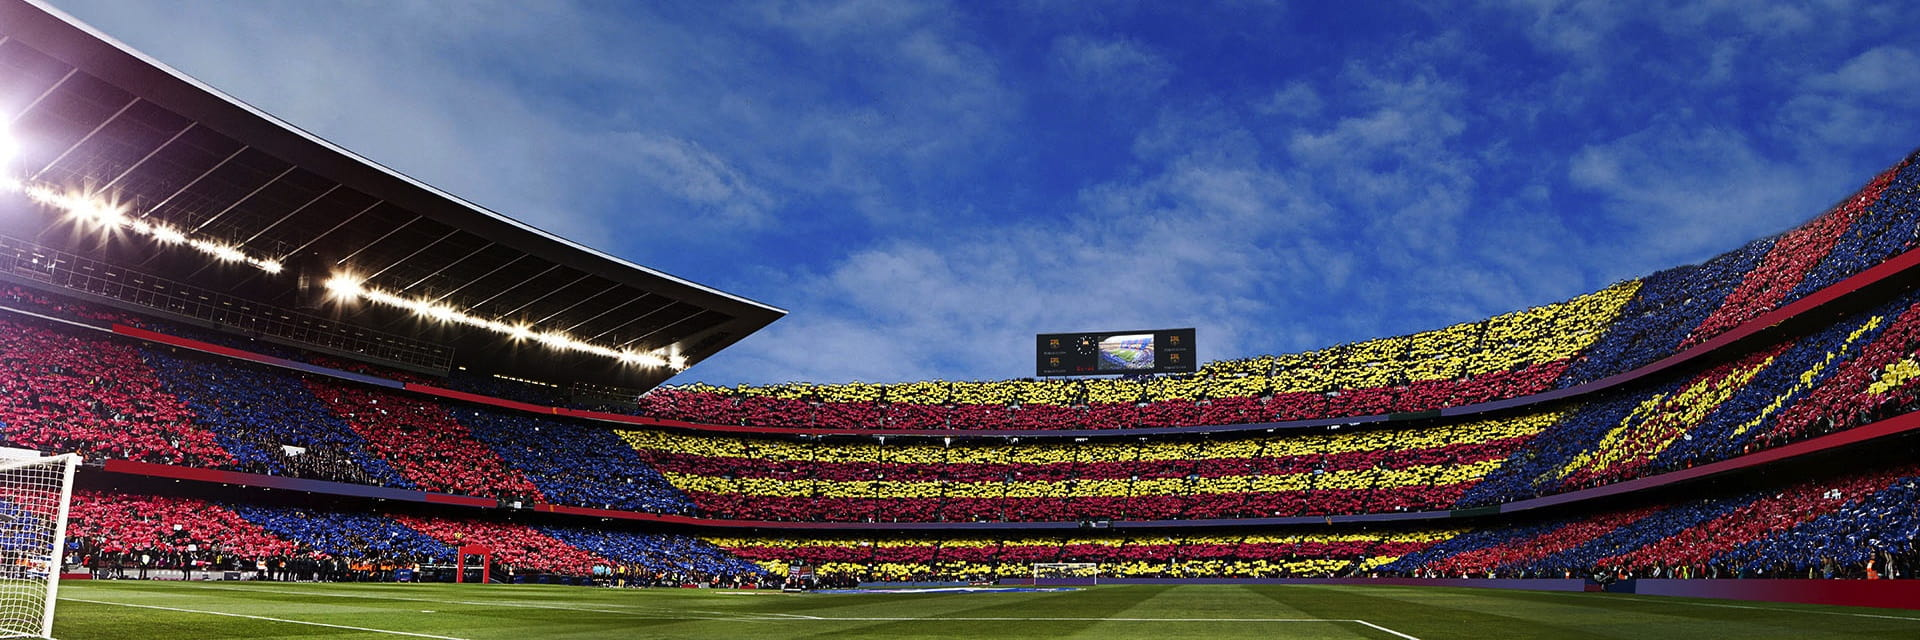 FC Barcelona - Real Madrid, 3 decemberkl. 21:00